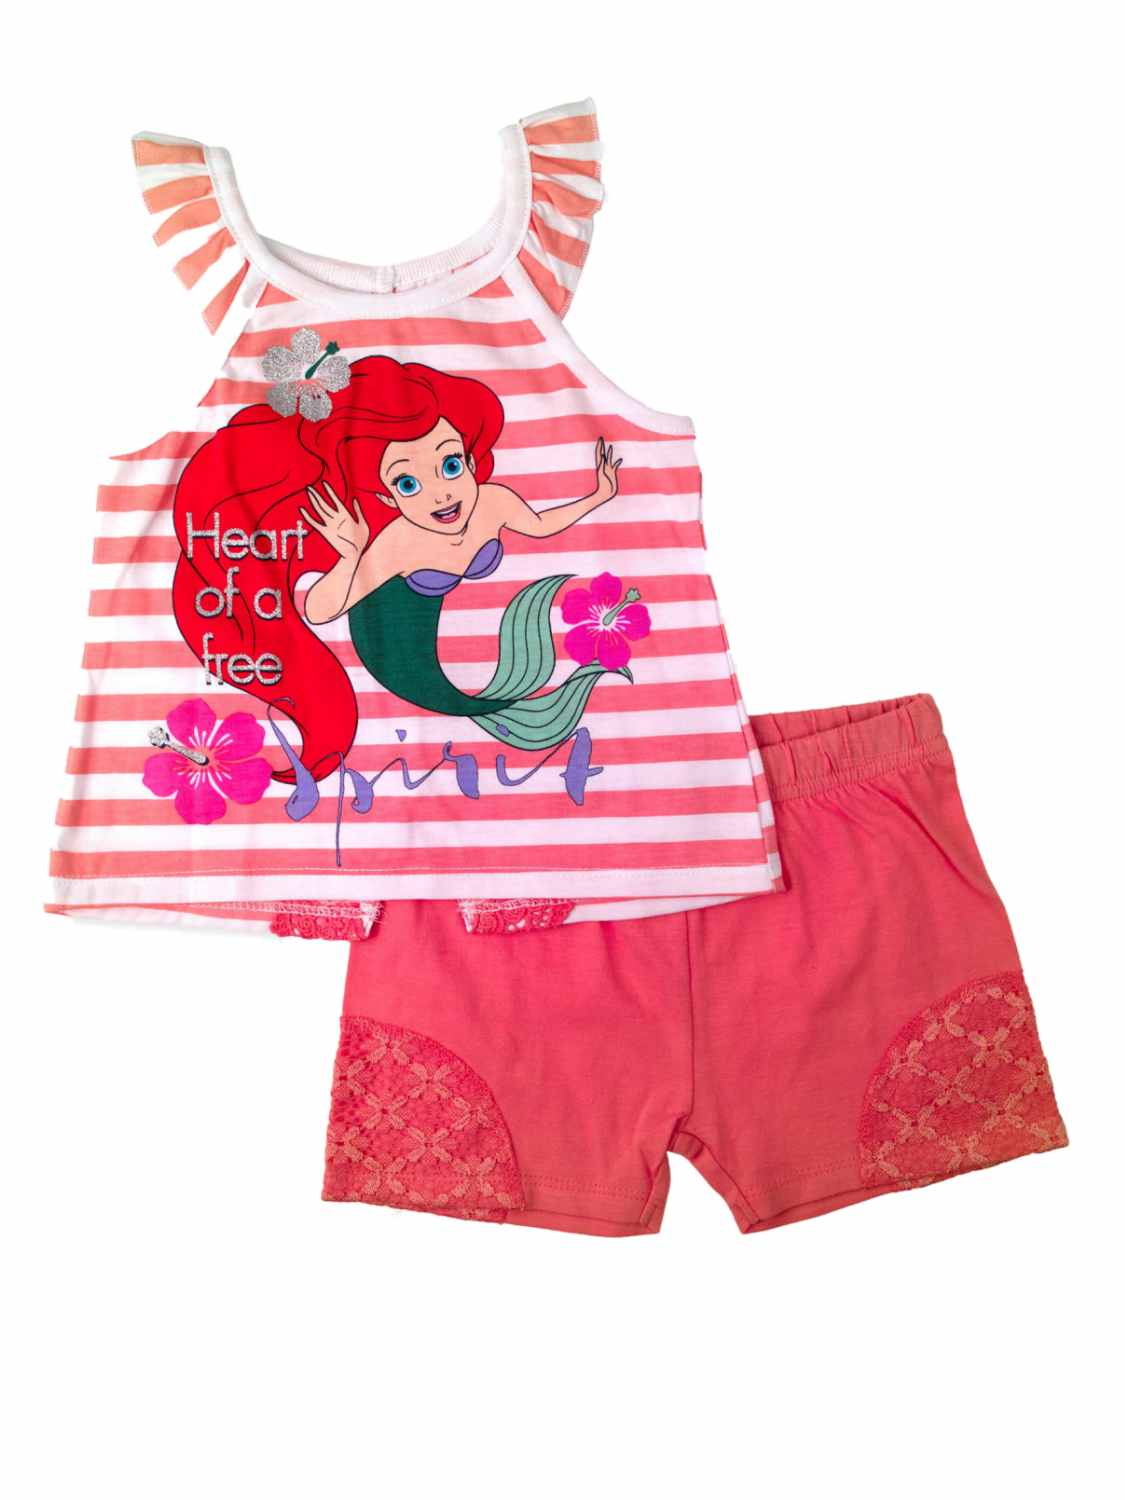 Disney Little Mermaid Infant Ariel Baby Toddler Outfit Peach Shirt Short Set